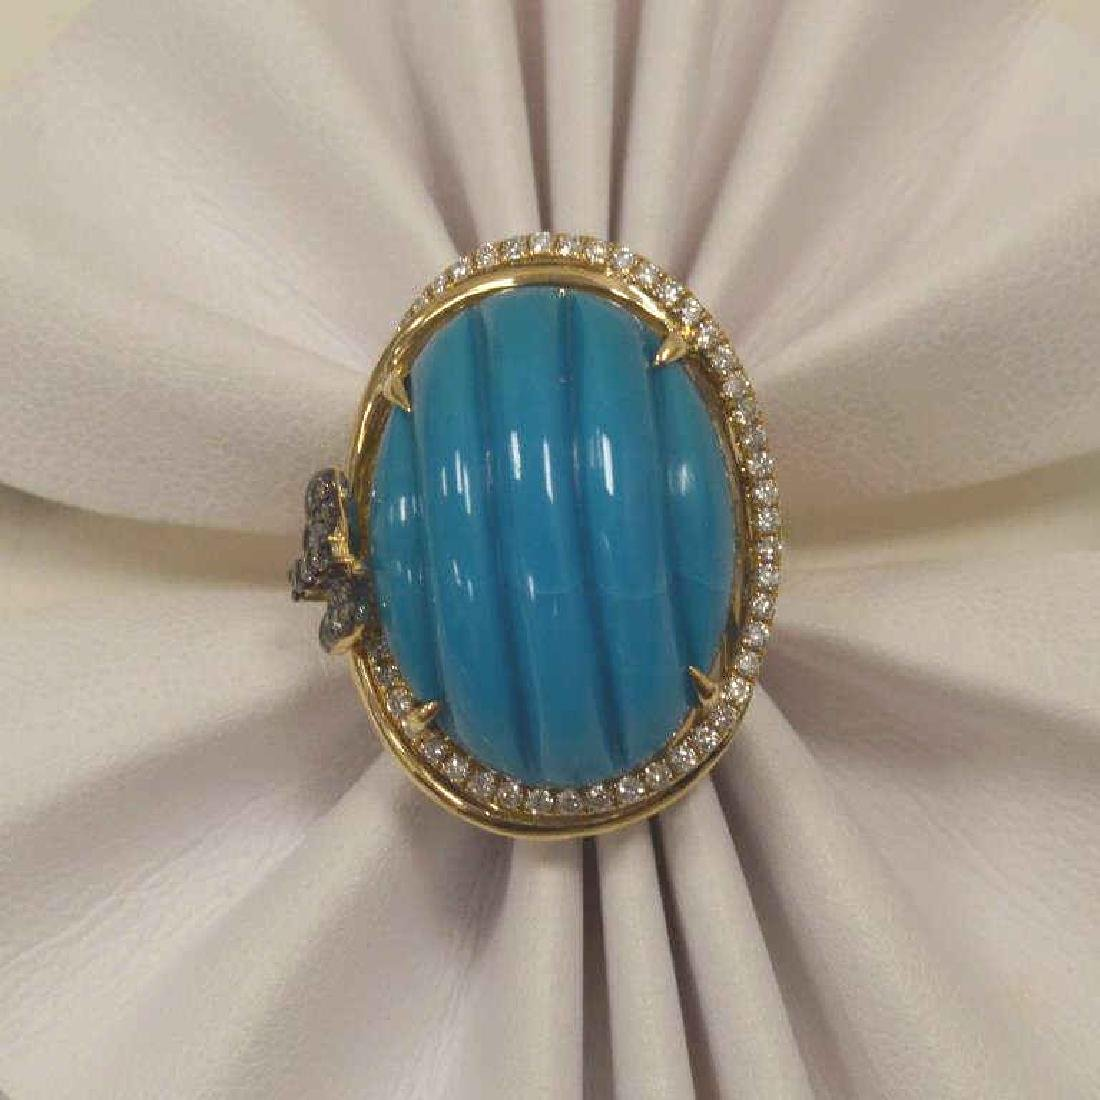 14kt yellow gold turquoise and diamond ring - 7